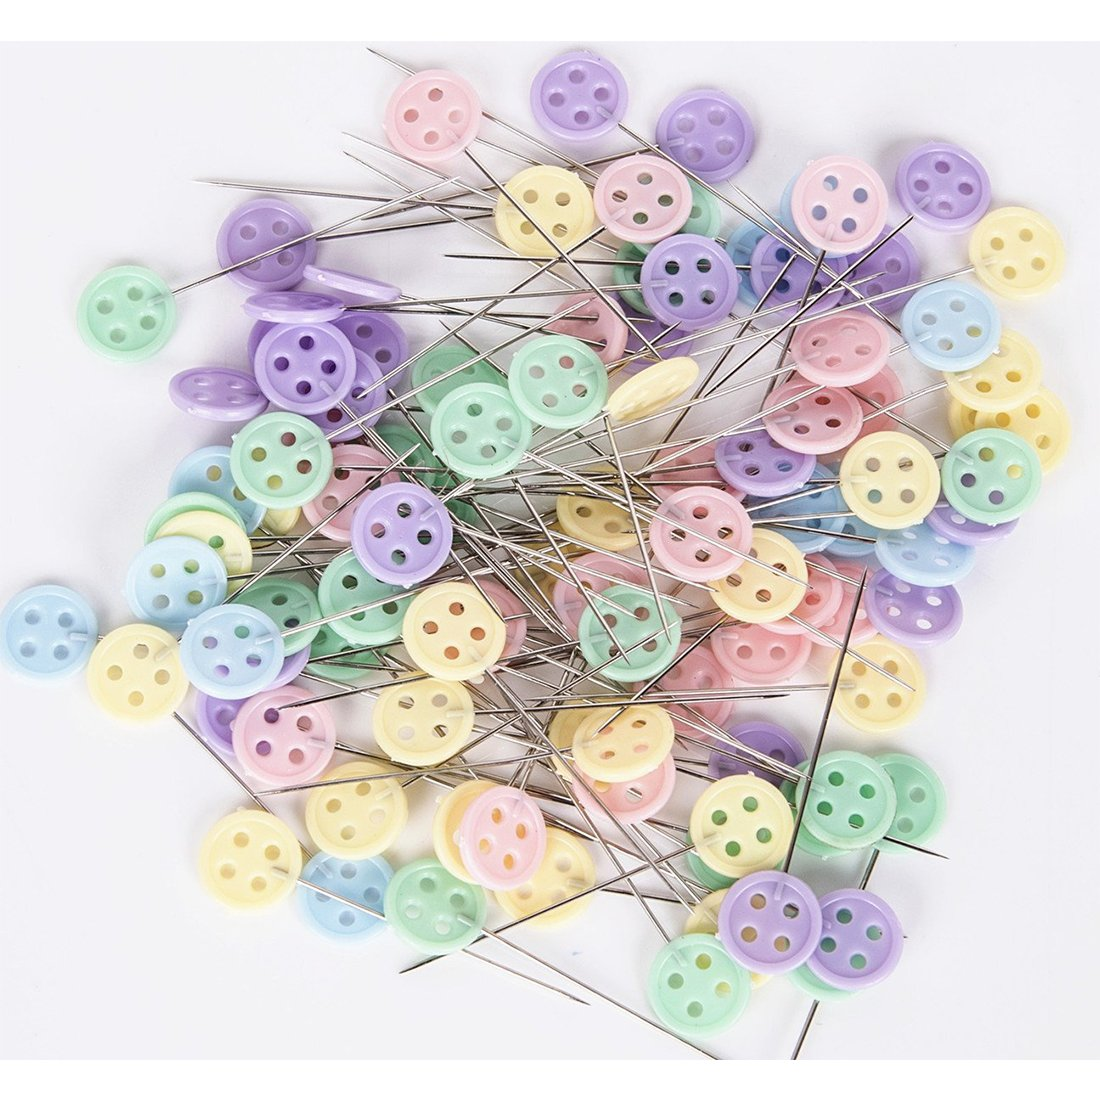 Quilting Pins with Cases 500 Pcs Flat Button /&Flower Head Pins,Straight Pins